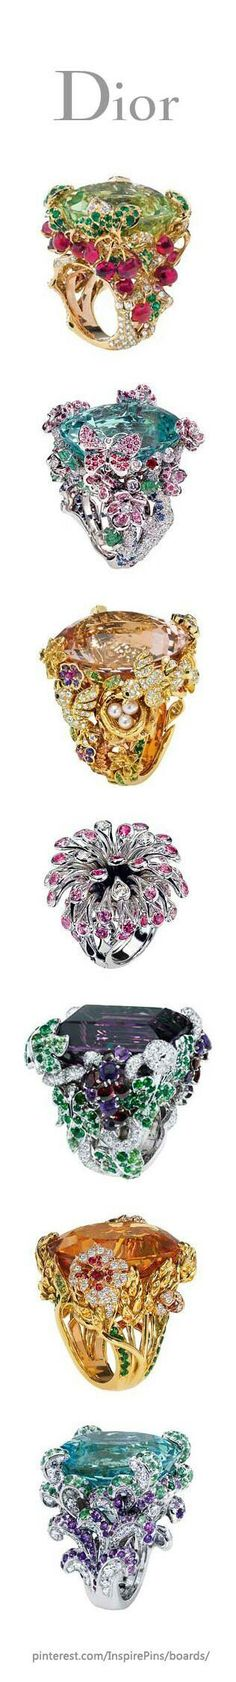 Dior Fine Jewelry.,need busy ideas to incorporate in one off design